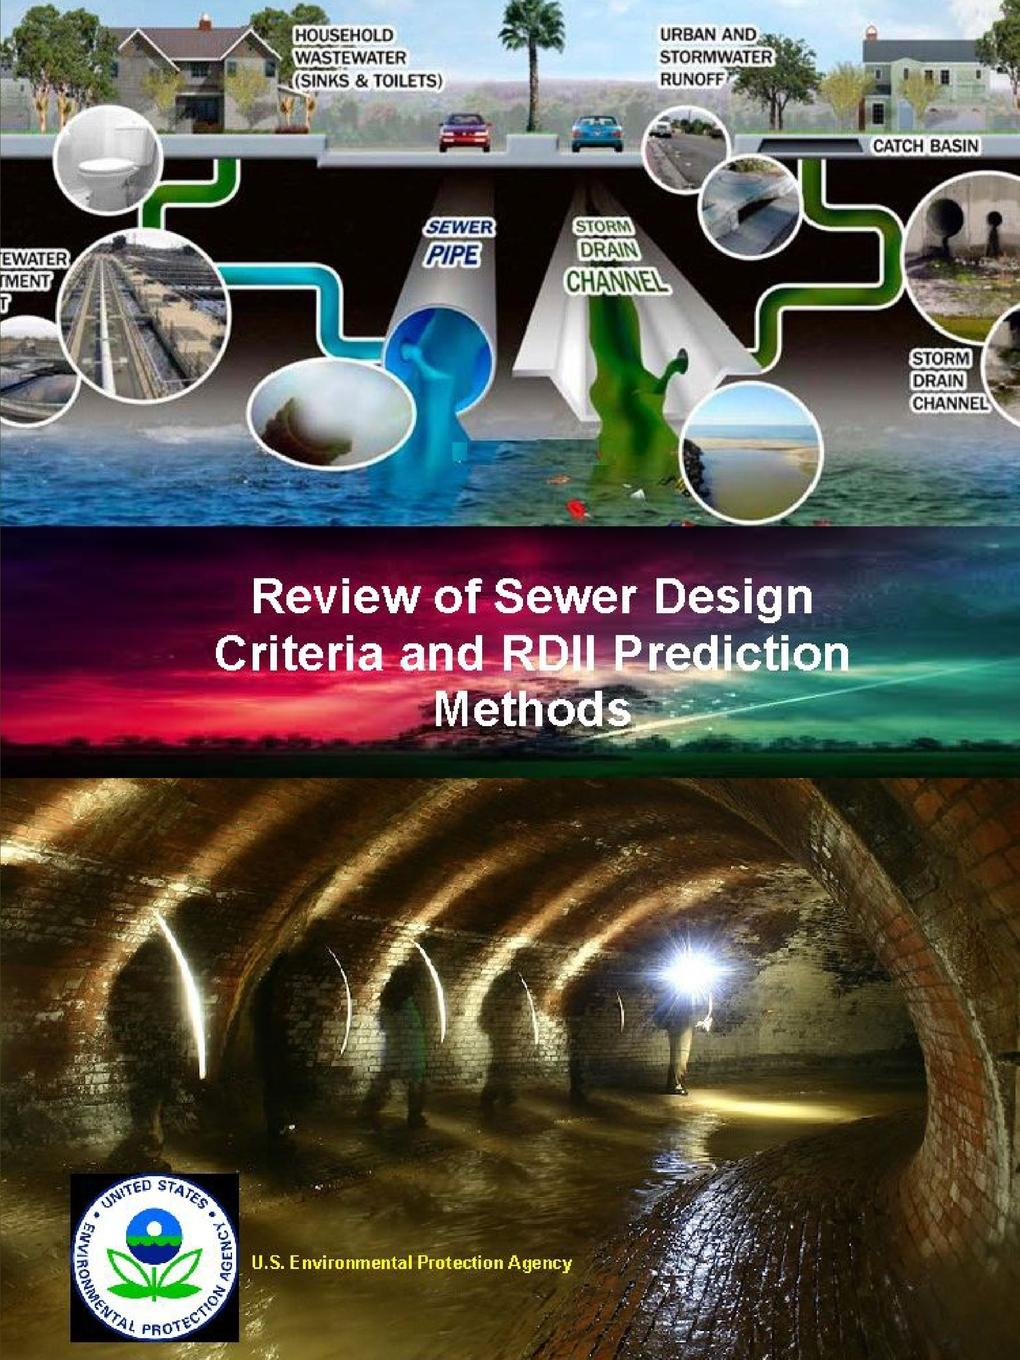 U.S. Environmental Protection Agency Review of Sewer Design Criteria and RDII Prediction Methods